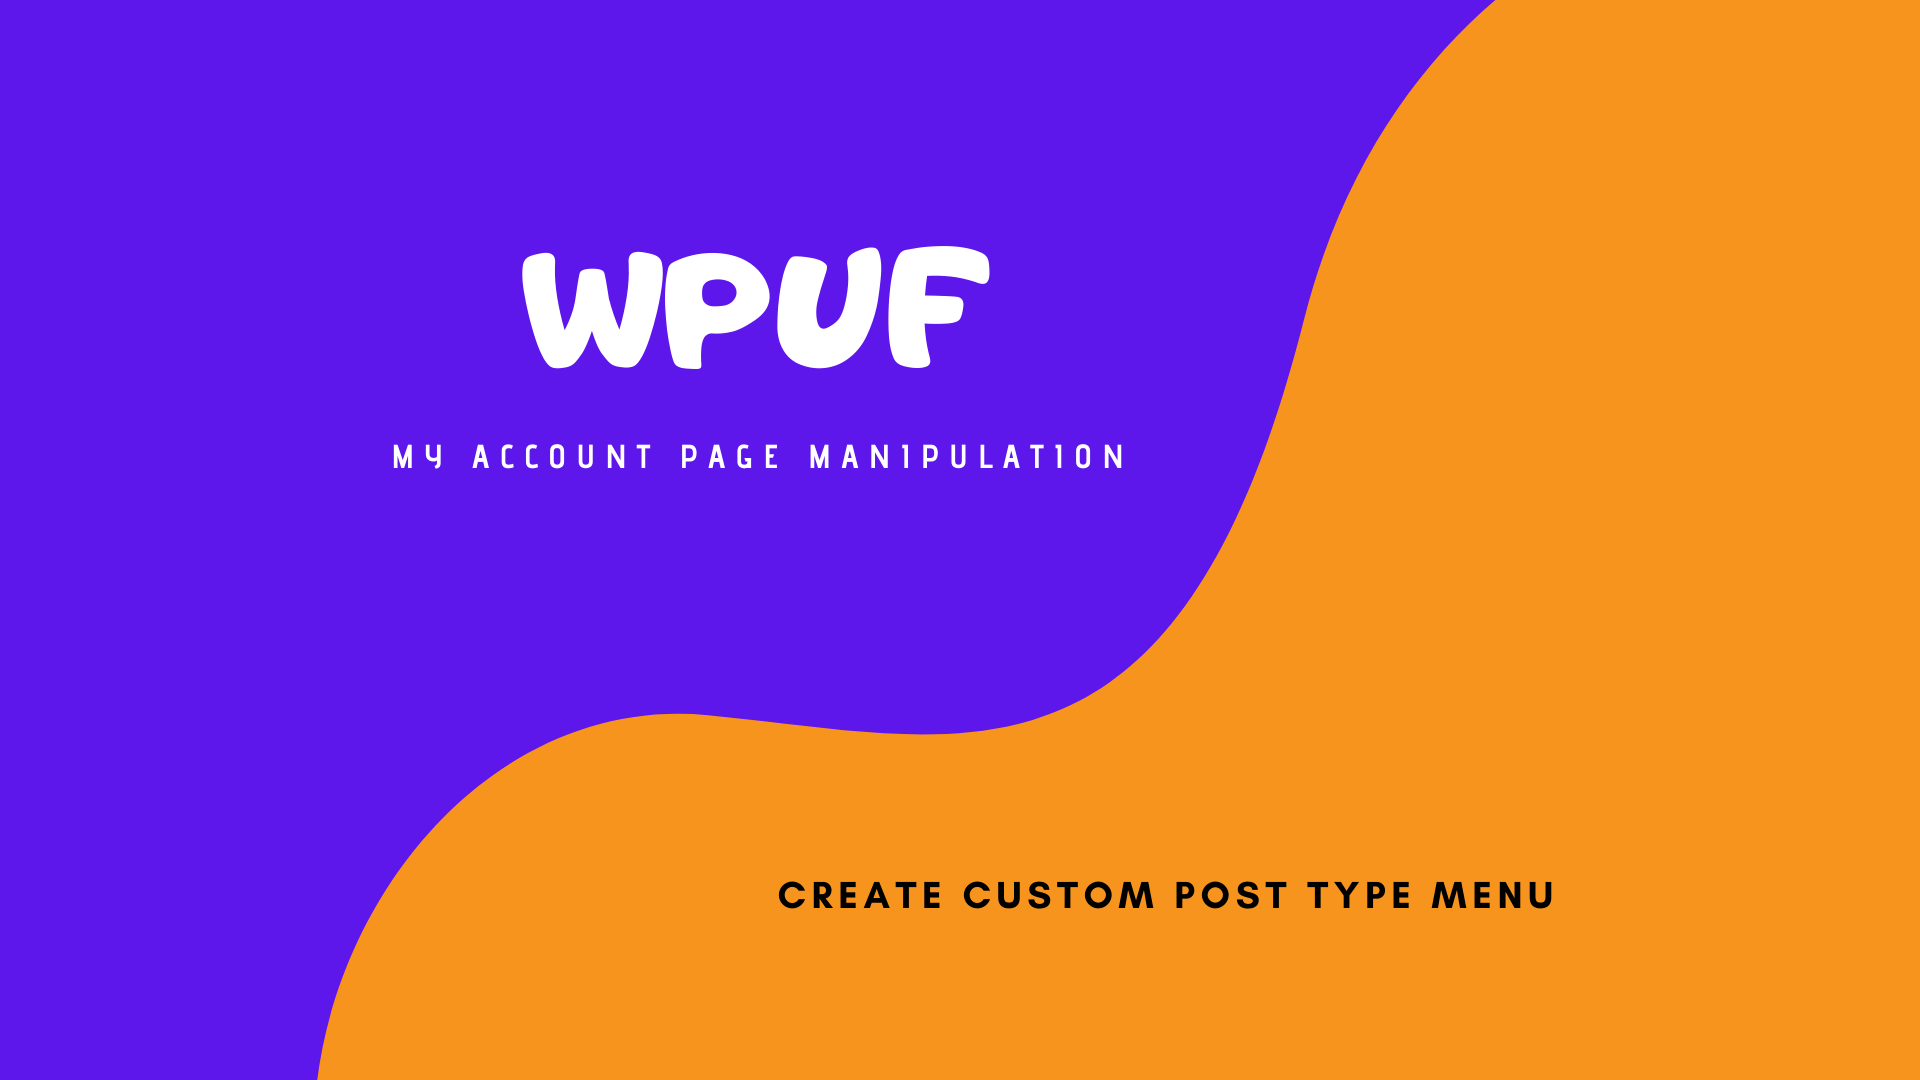 How to add a custom section-menu on WPUF Account page